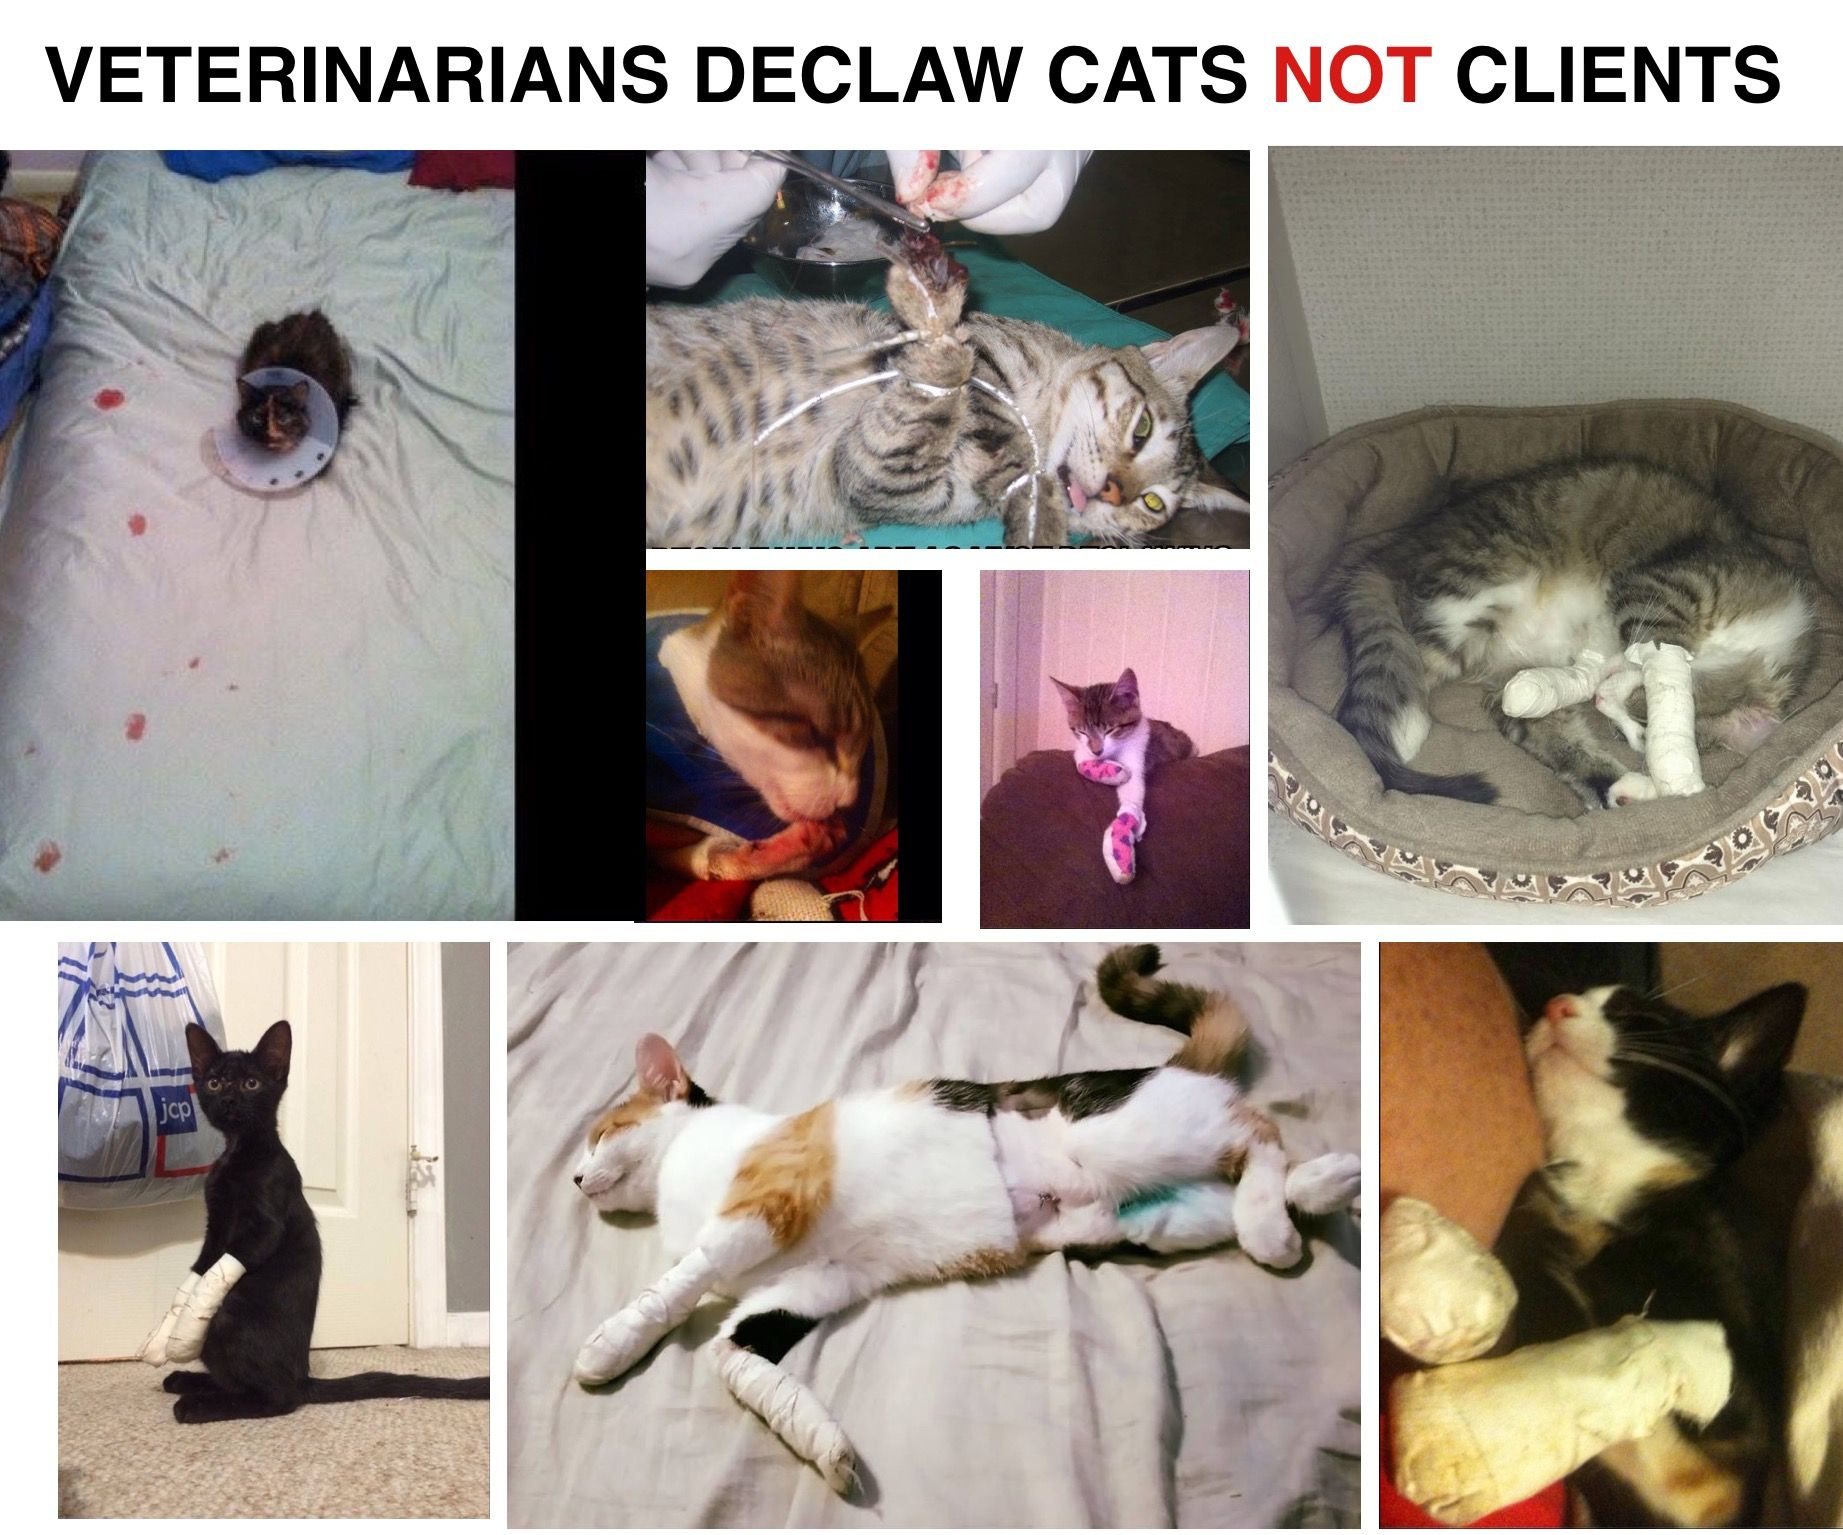 Avmavets Stop Lying Most Clients Do Not Know How Barbaric Declawing Is You Tell Them It Is A Simple Surgery So You Can Cas Vet Tech Vet School Vet Student